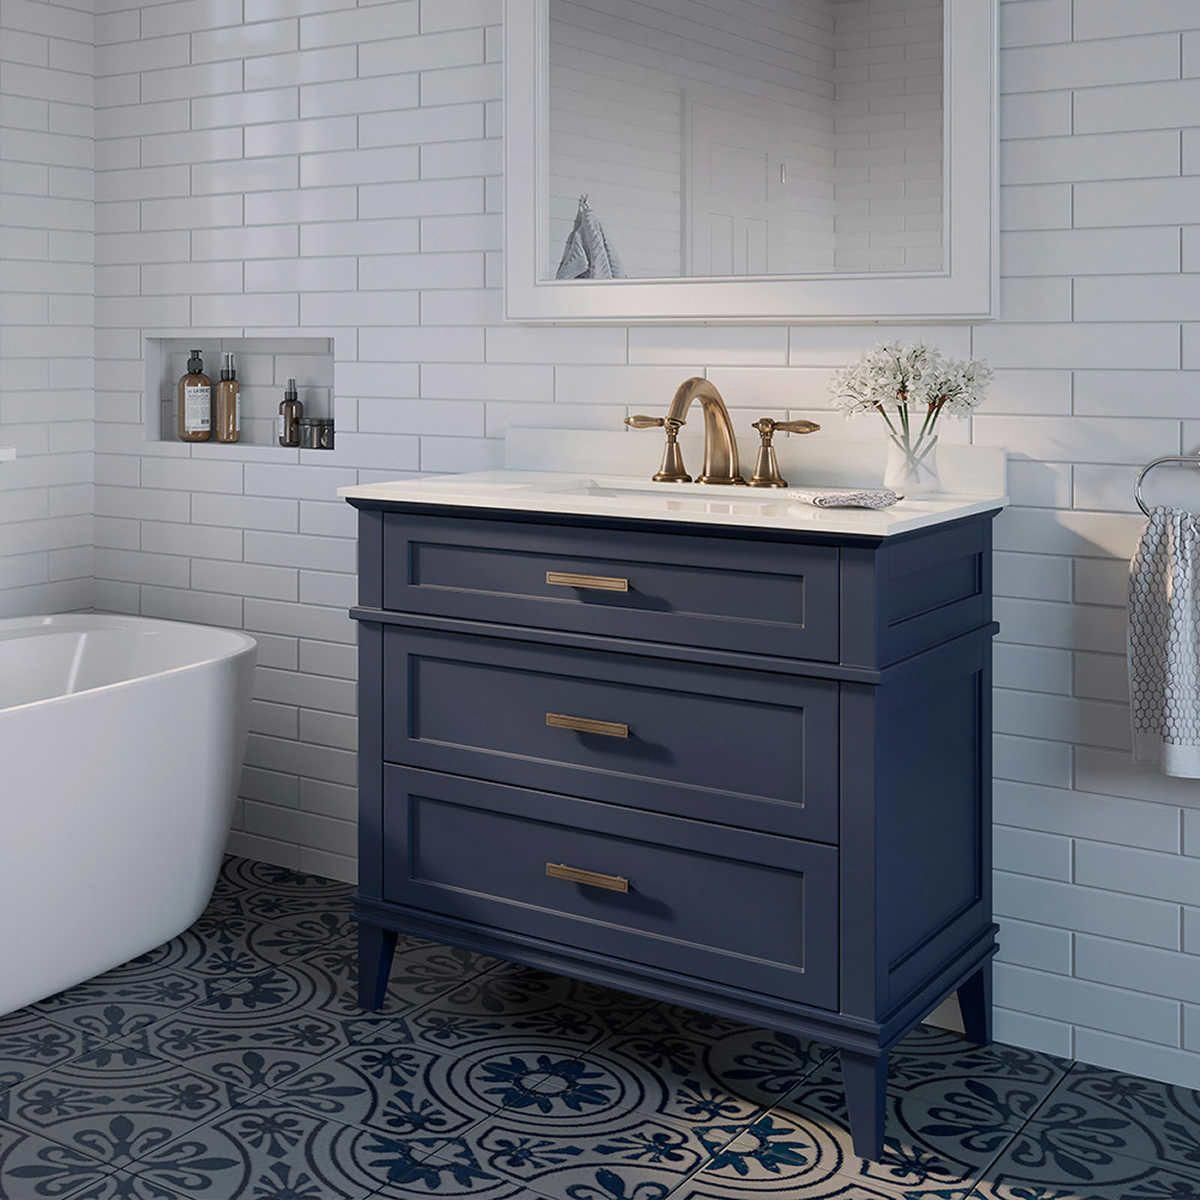 36 Blue Vanity From Costco Ca So Reasonable And Such A Nice Change To Have Colour Bathroomcabinetwh In 2020 Blue Vanity Blue Bathroom Vanity Blue Bathroom Interior